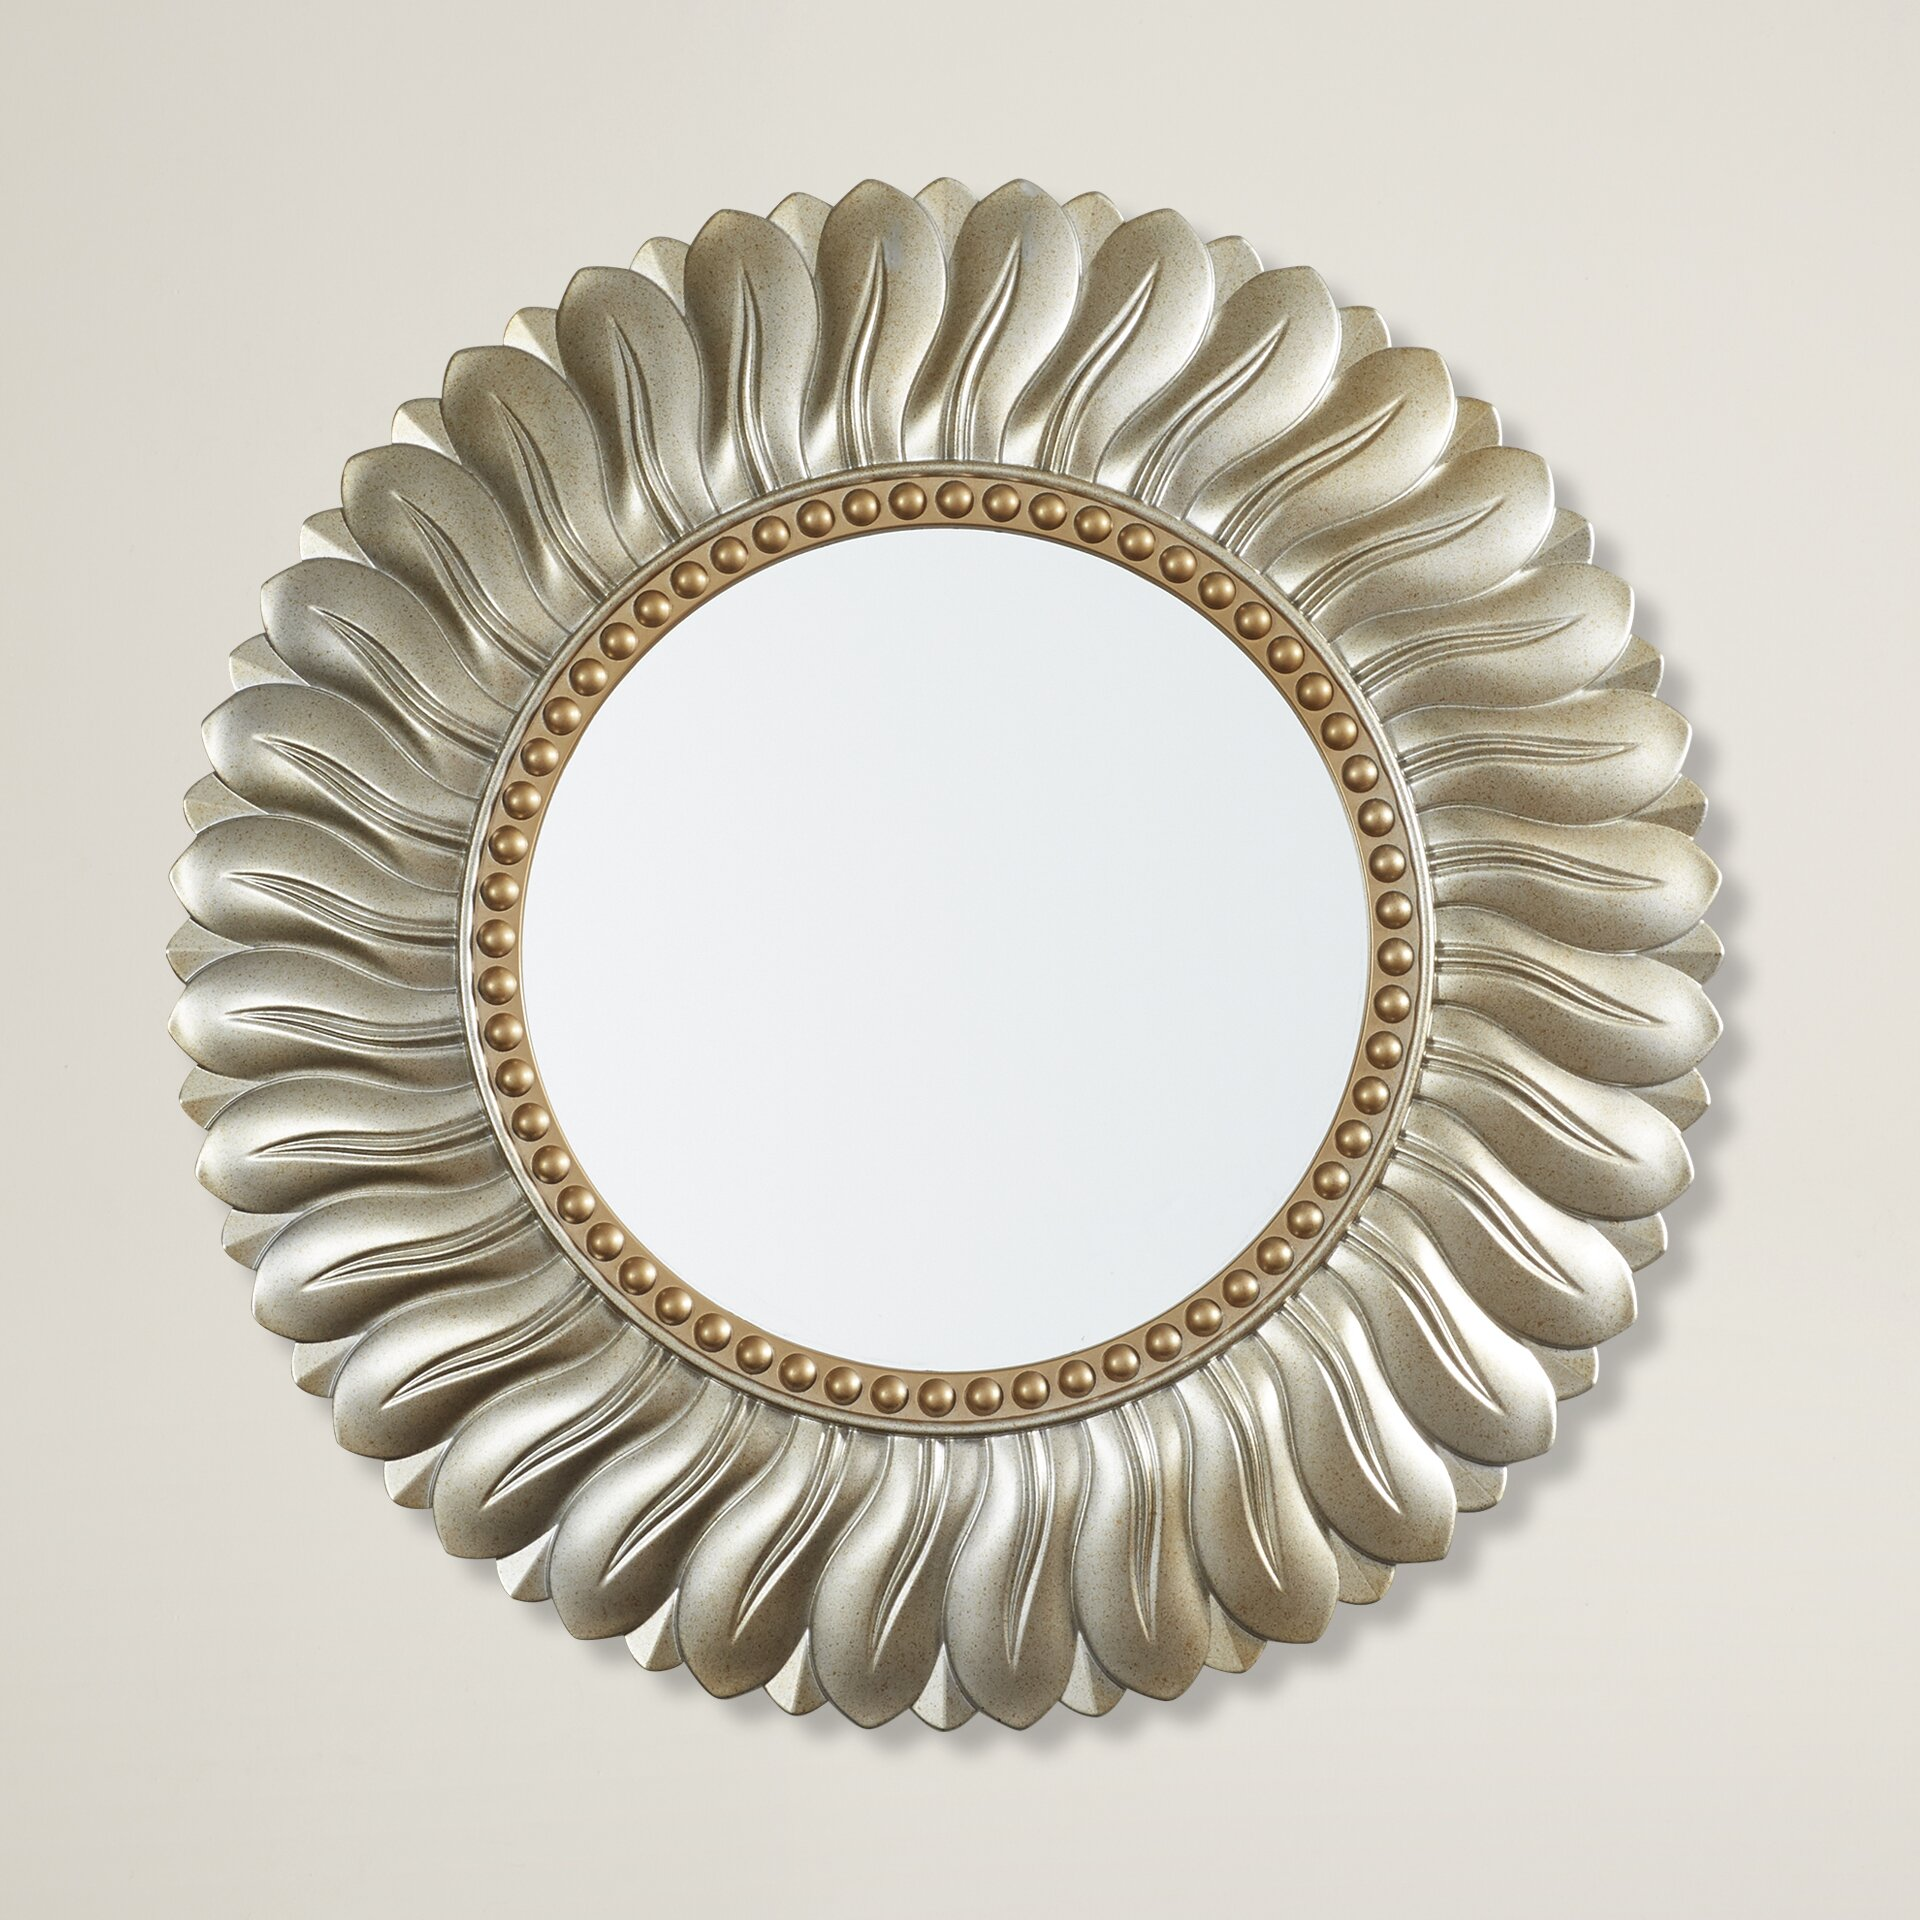 Willa Arlo Interiors Vertical Round Resin Wall Mirror Reviews